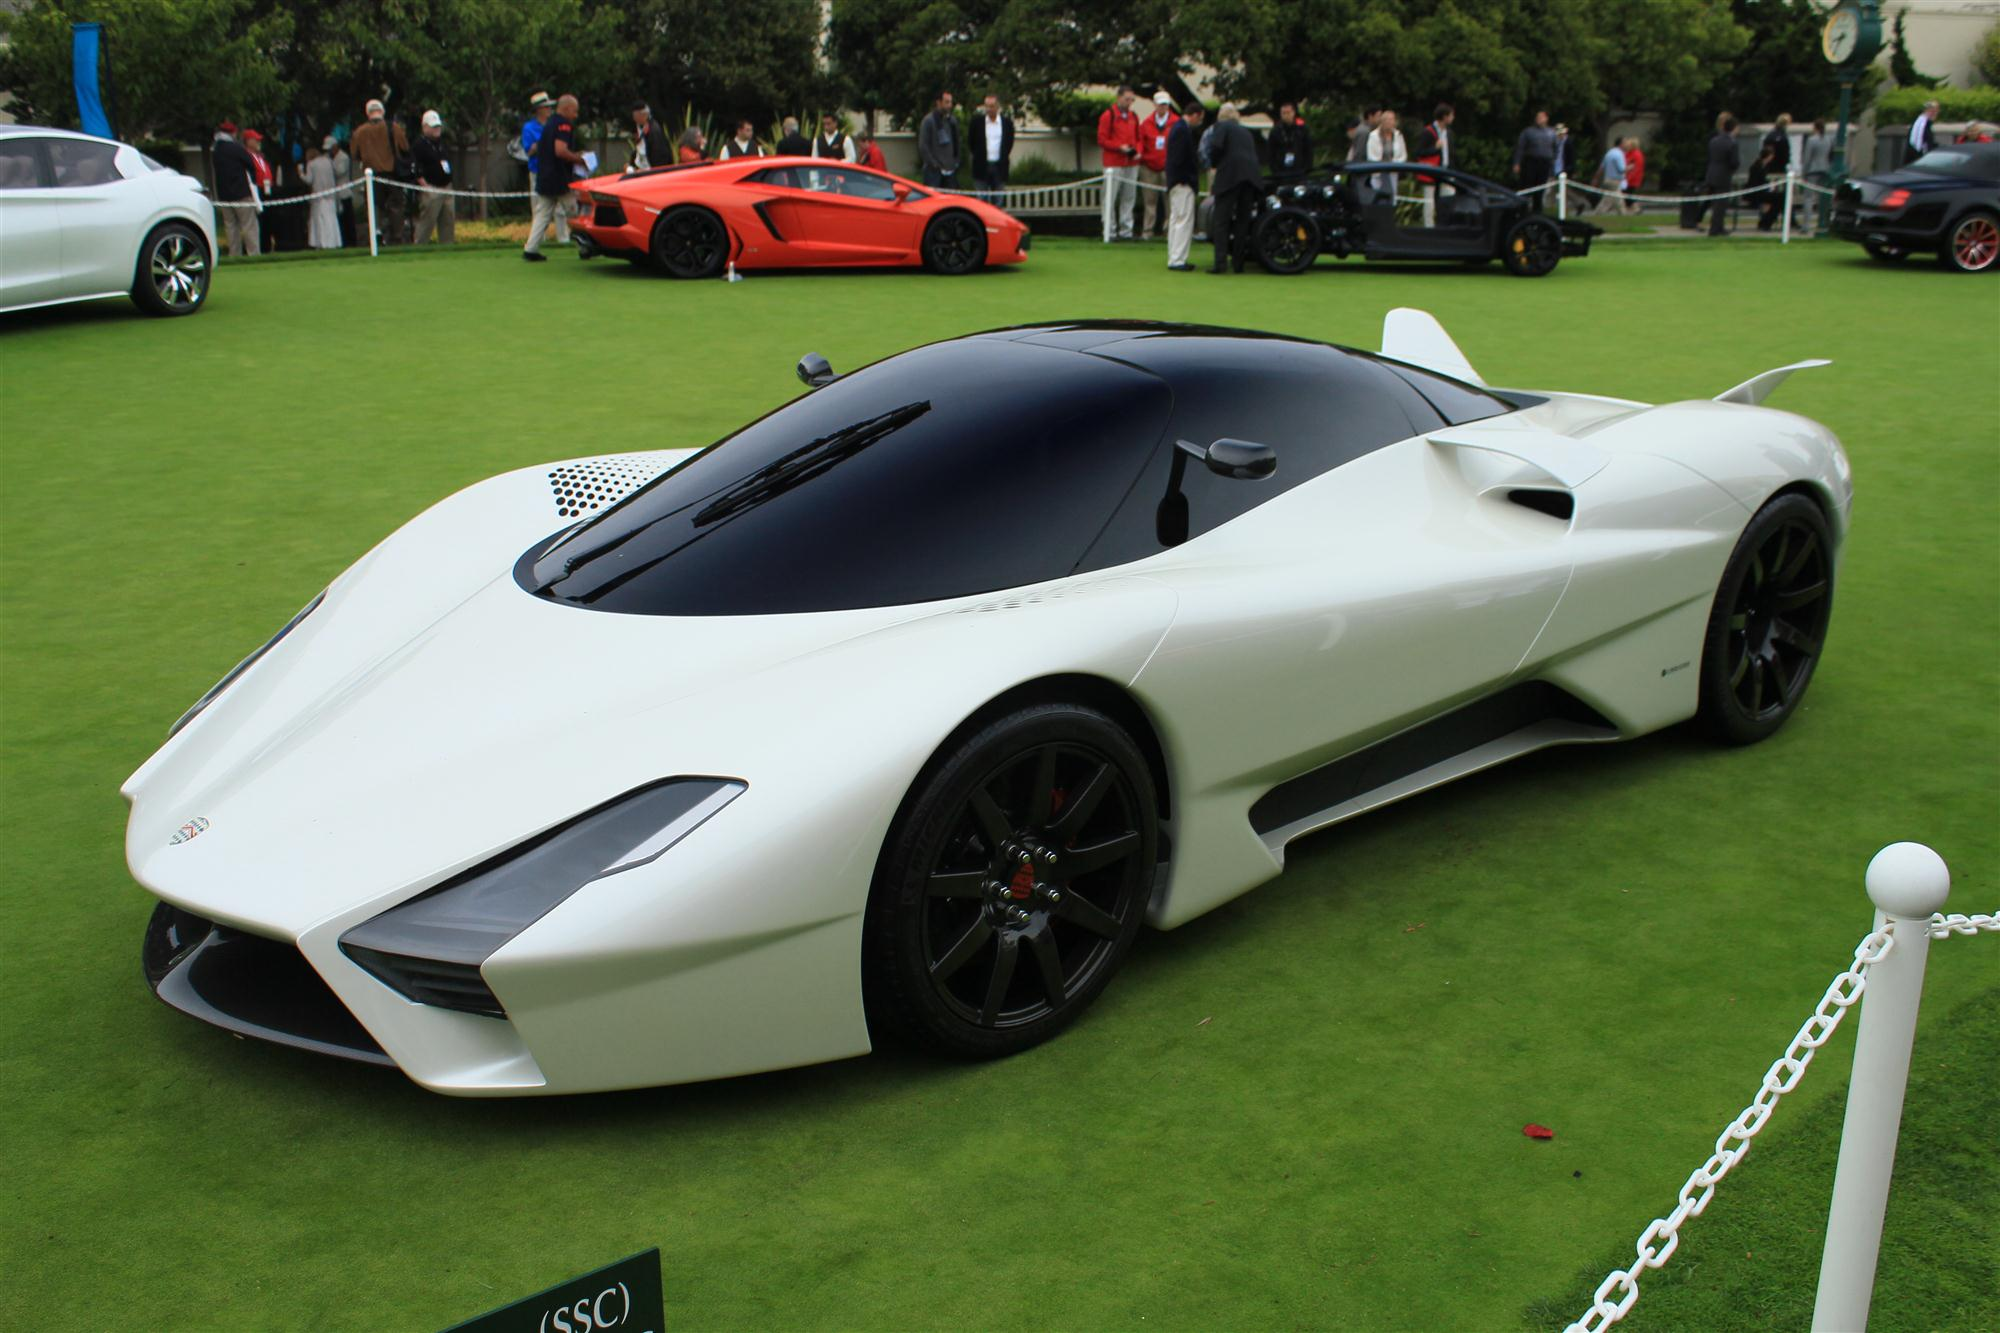 Auto Car Updates >> SSC Tuatara's 1,350-HP Output Confirmed On The Dyno